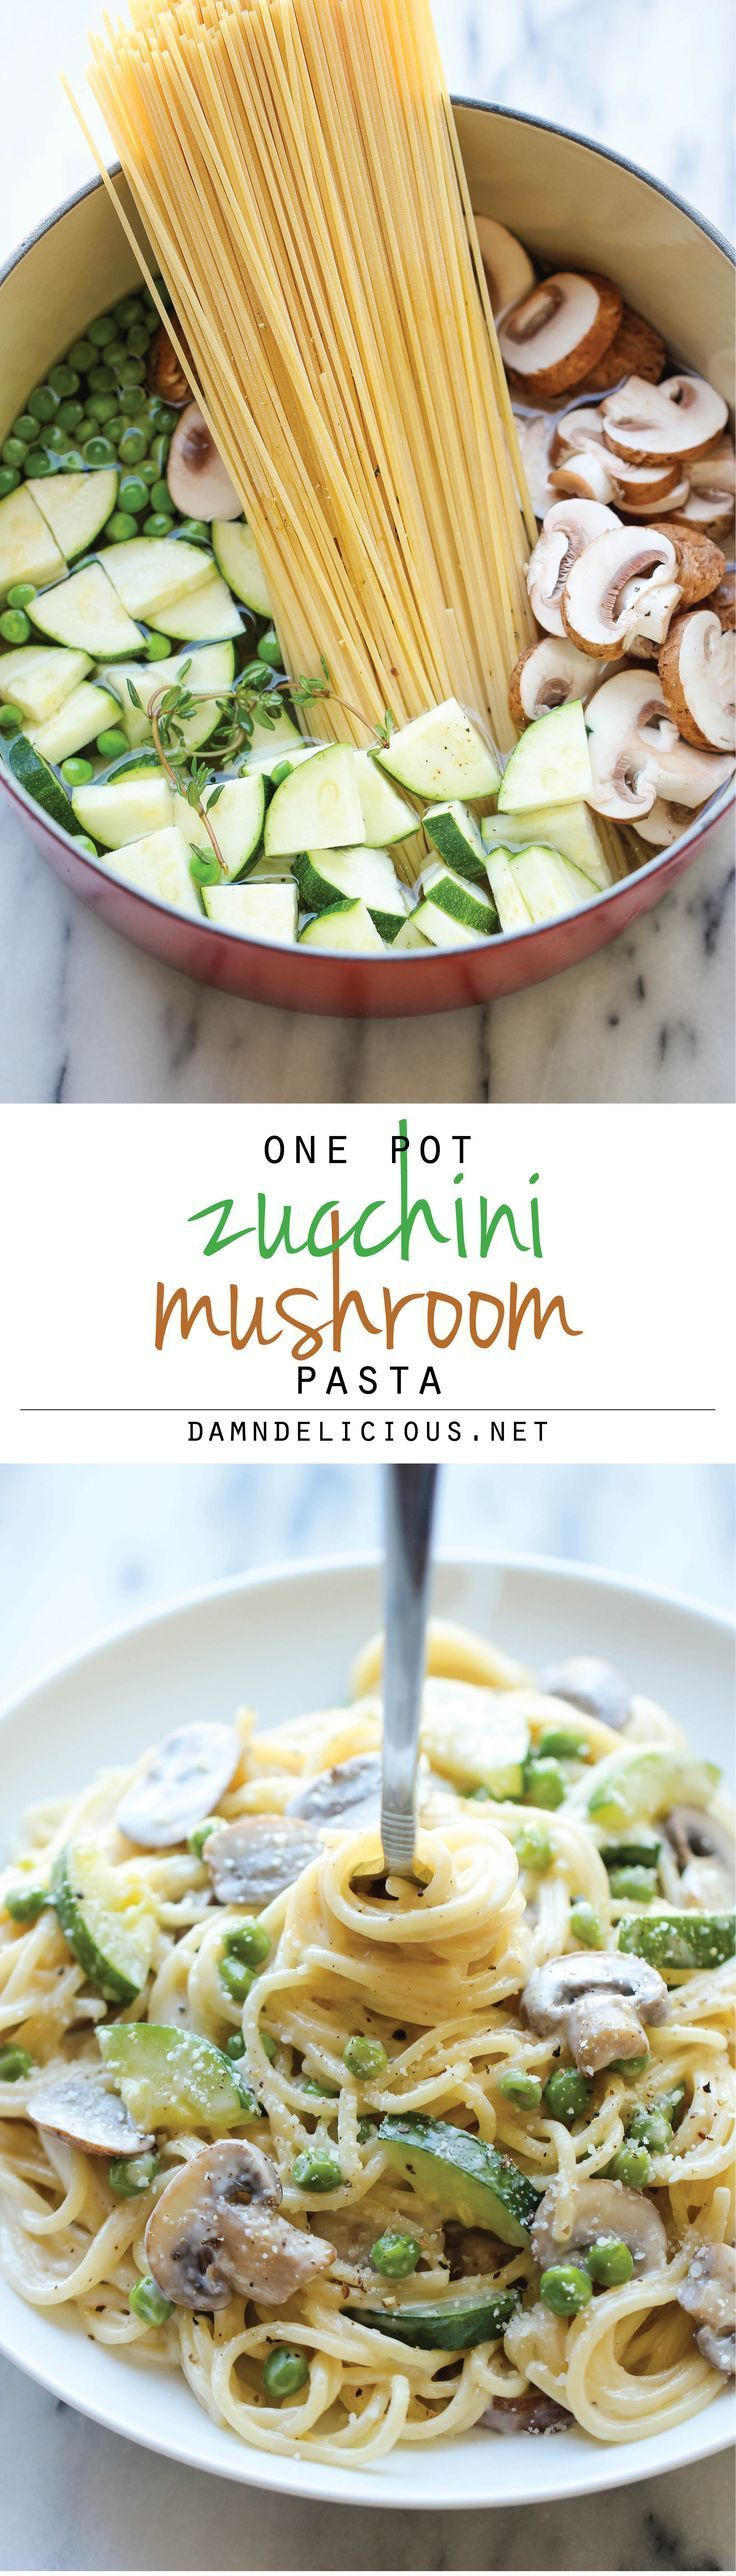 One Pot Zucchini Mushroom Pasta – A creamy, hearty pasta dish that you can make in just 20 min. Even the pasta gets cooked in the pot!